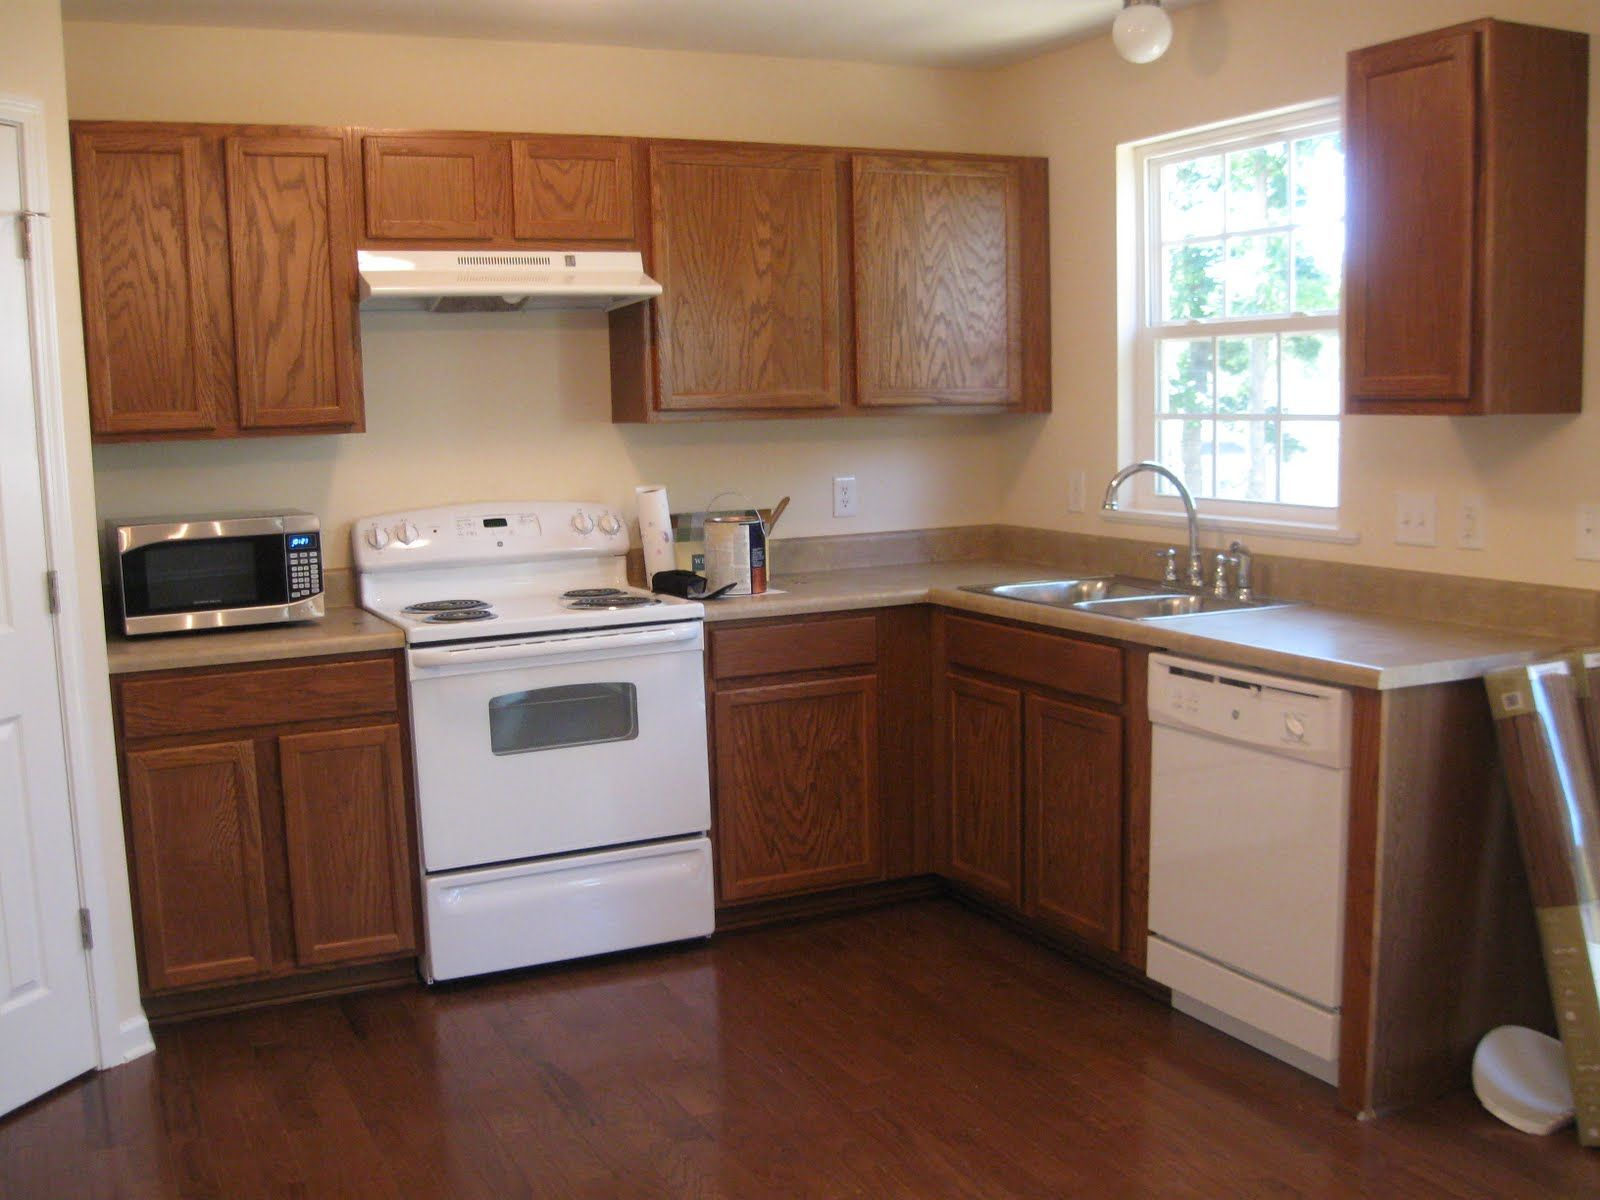 Wood Cabinets Kitchen Ideas With Maple Rta Cabinet Refacing And